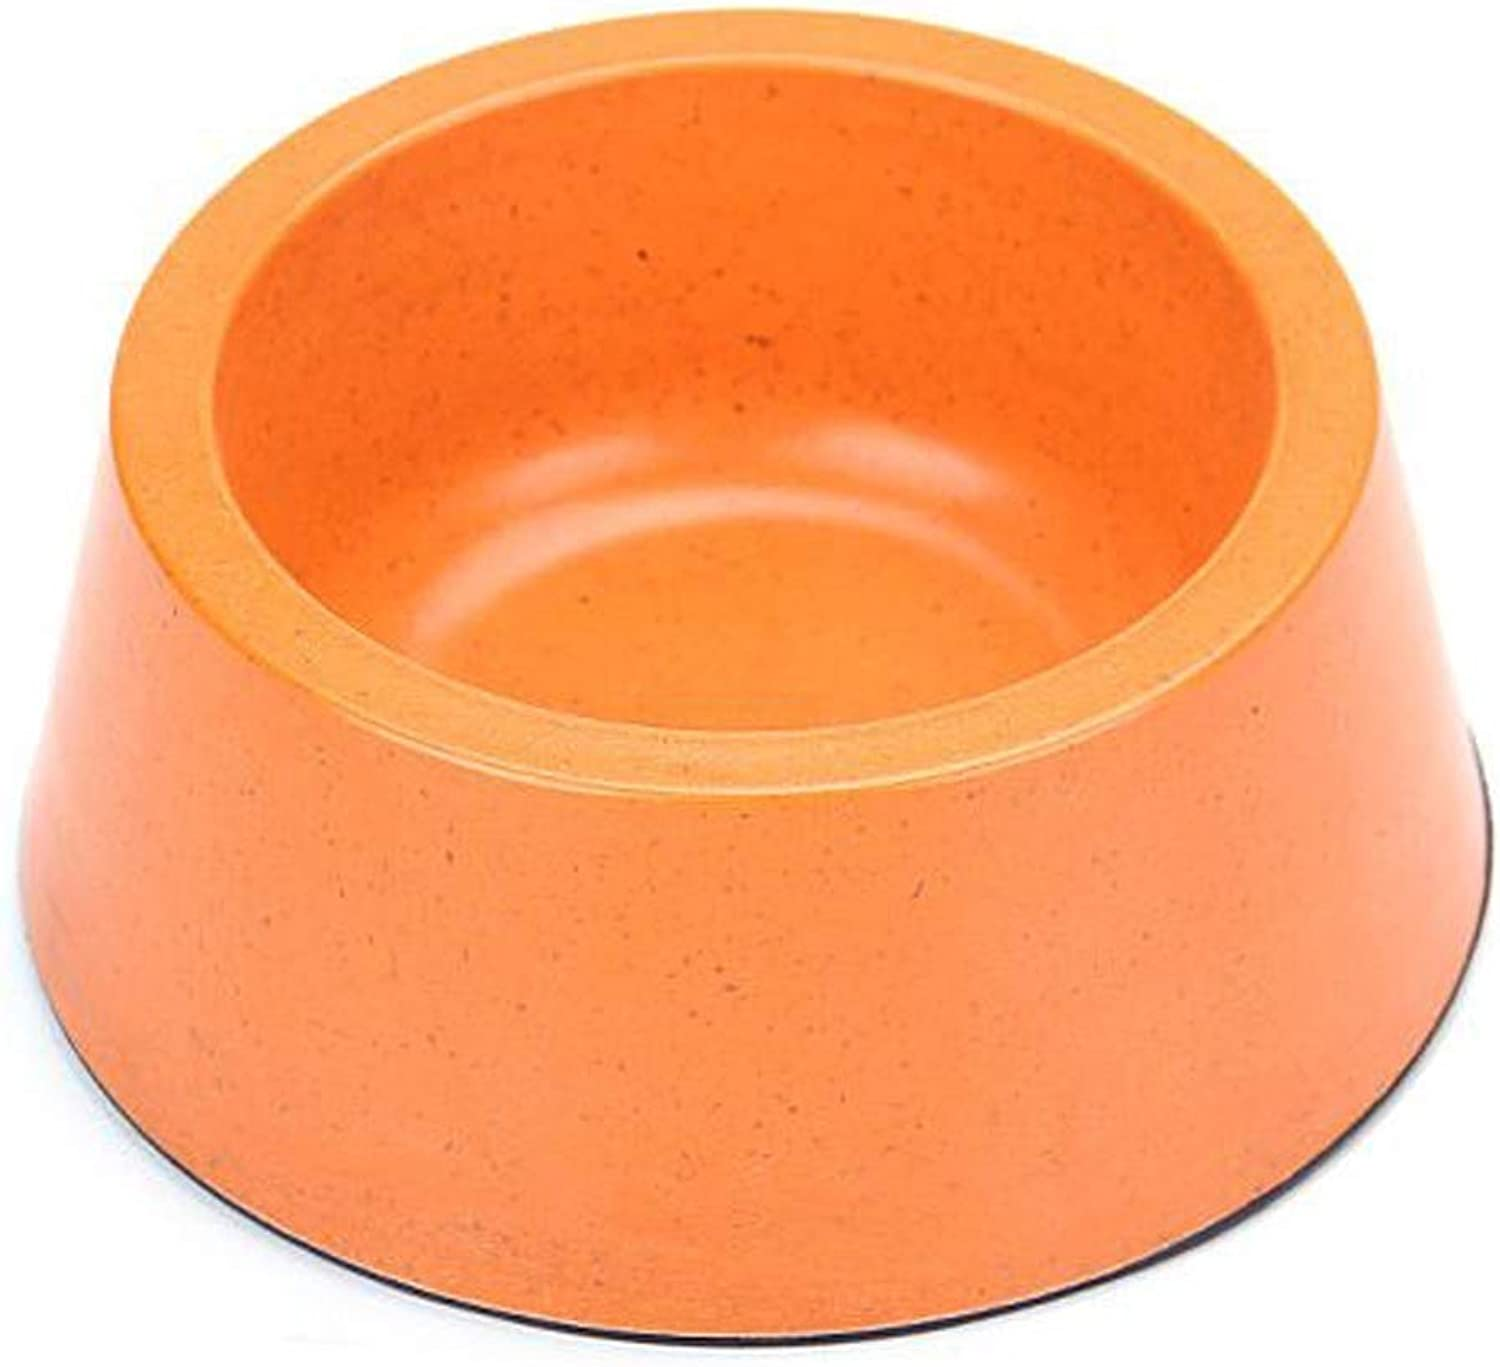 Pet Supplies Dog Food Cat Food Bowl Food Bowl Single Bowl Pet Lunch Box, Suitable for Animal Tableware Within 15 Kg Multicolor Optional (color   orange)